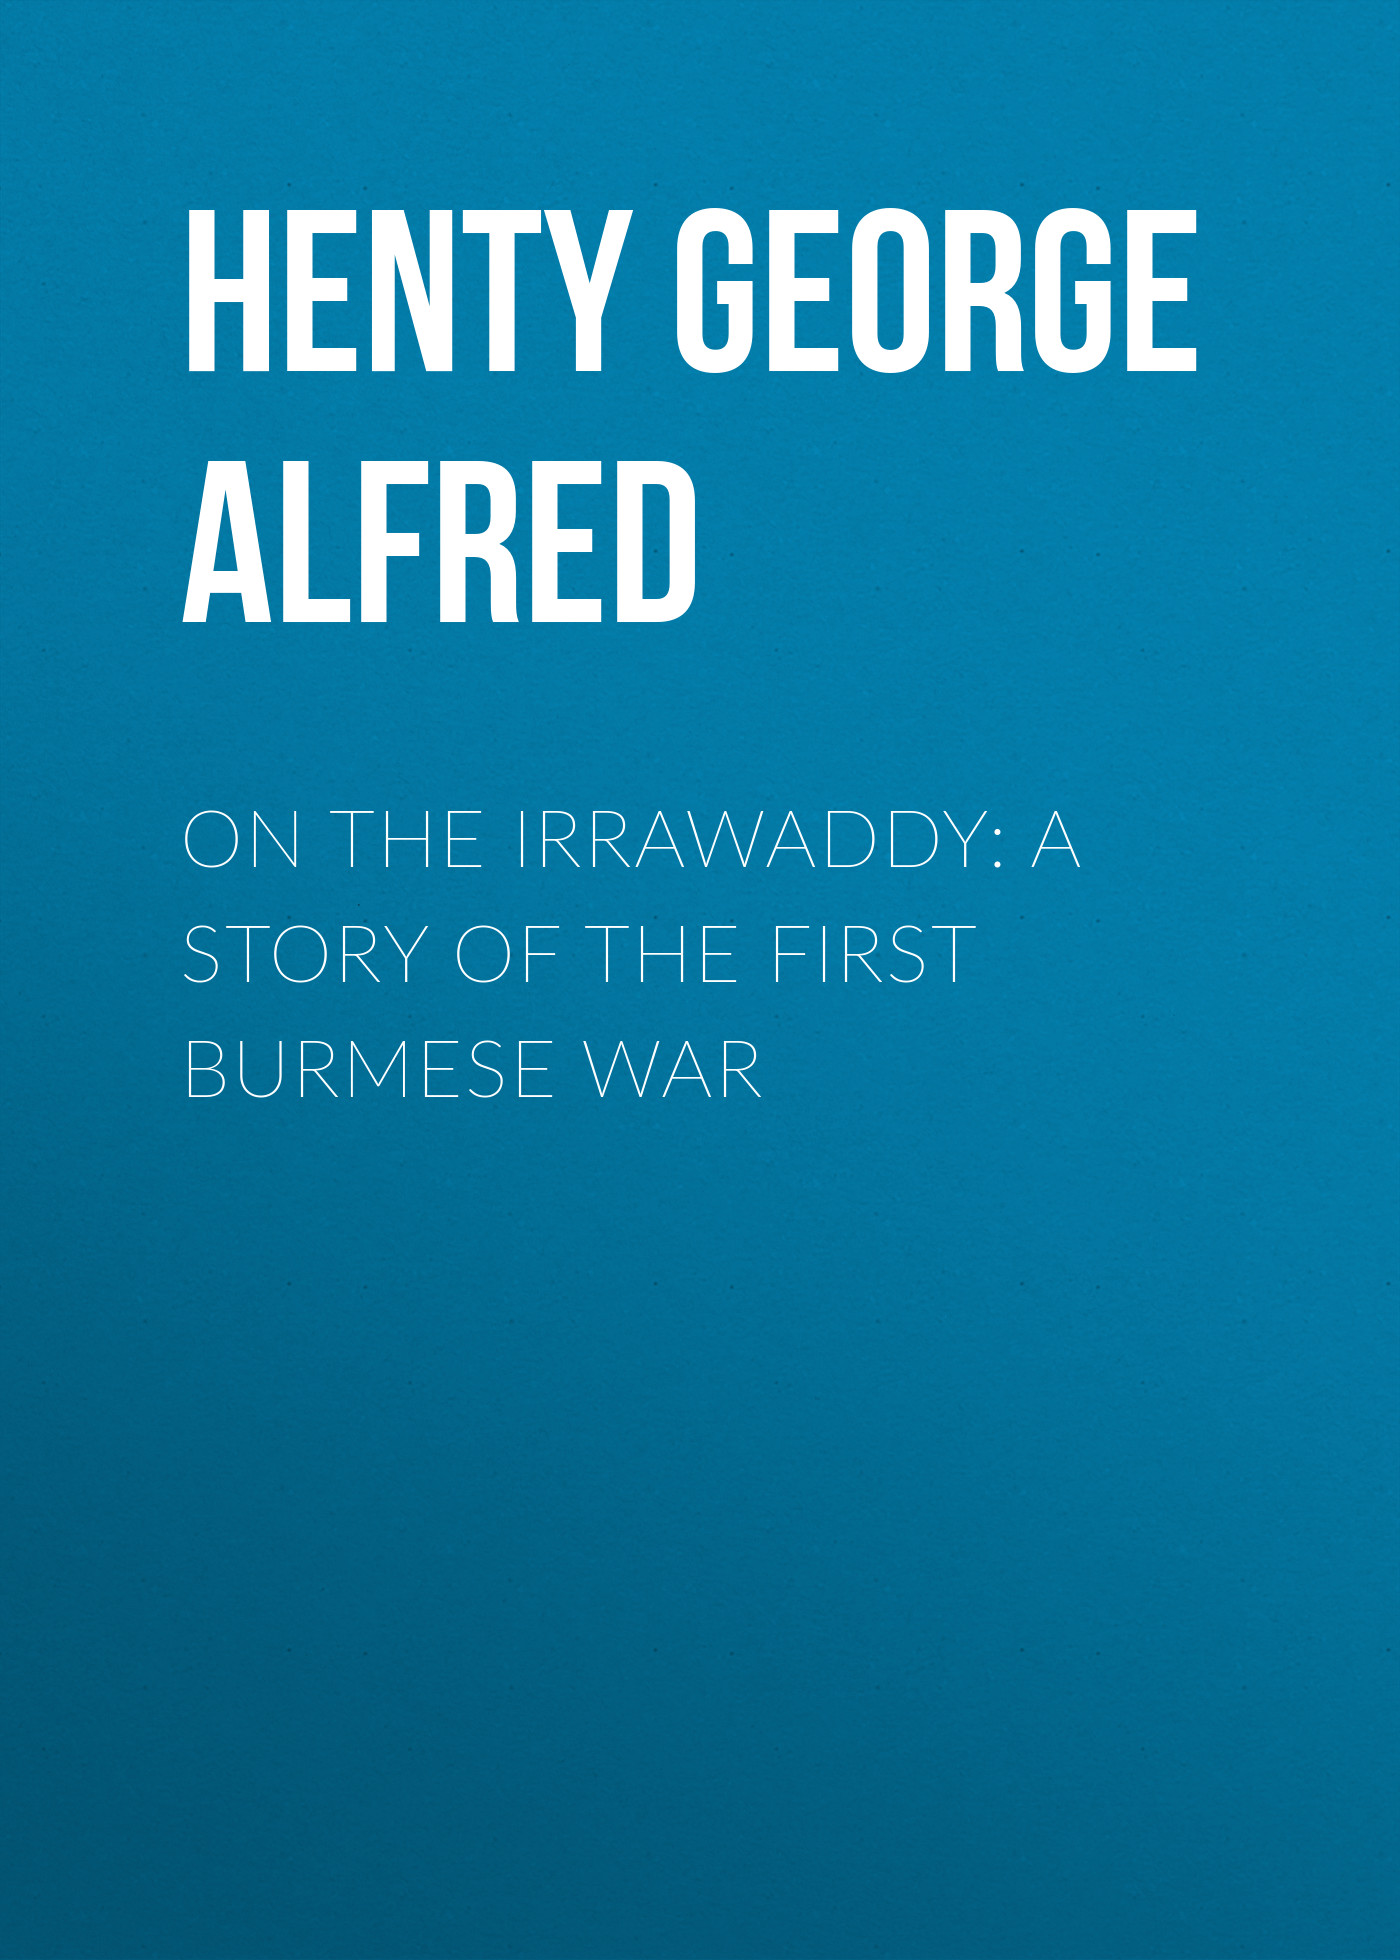 Henty George Alfred On the Irrawaddy: A Story of the First Burmese War george alfred henty with lee in virginia a story of the american civil war